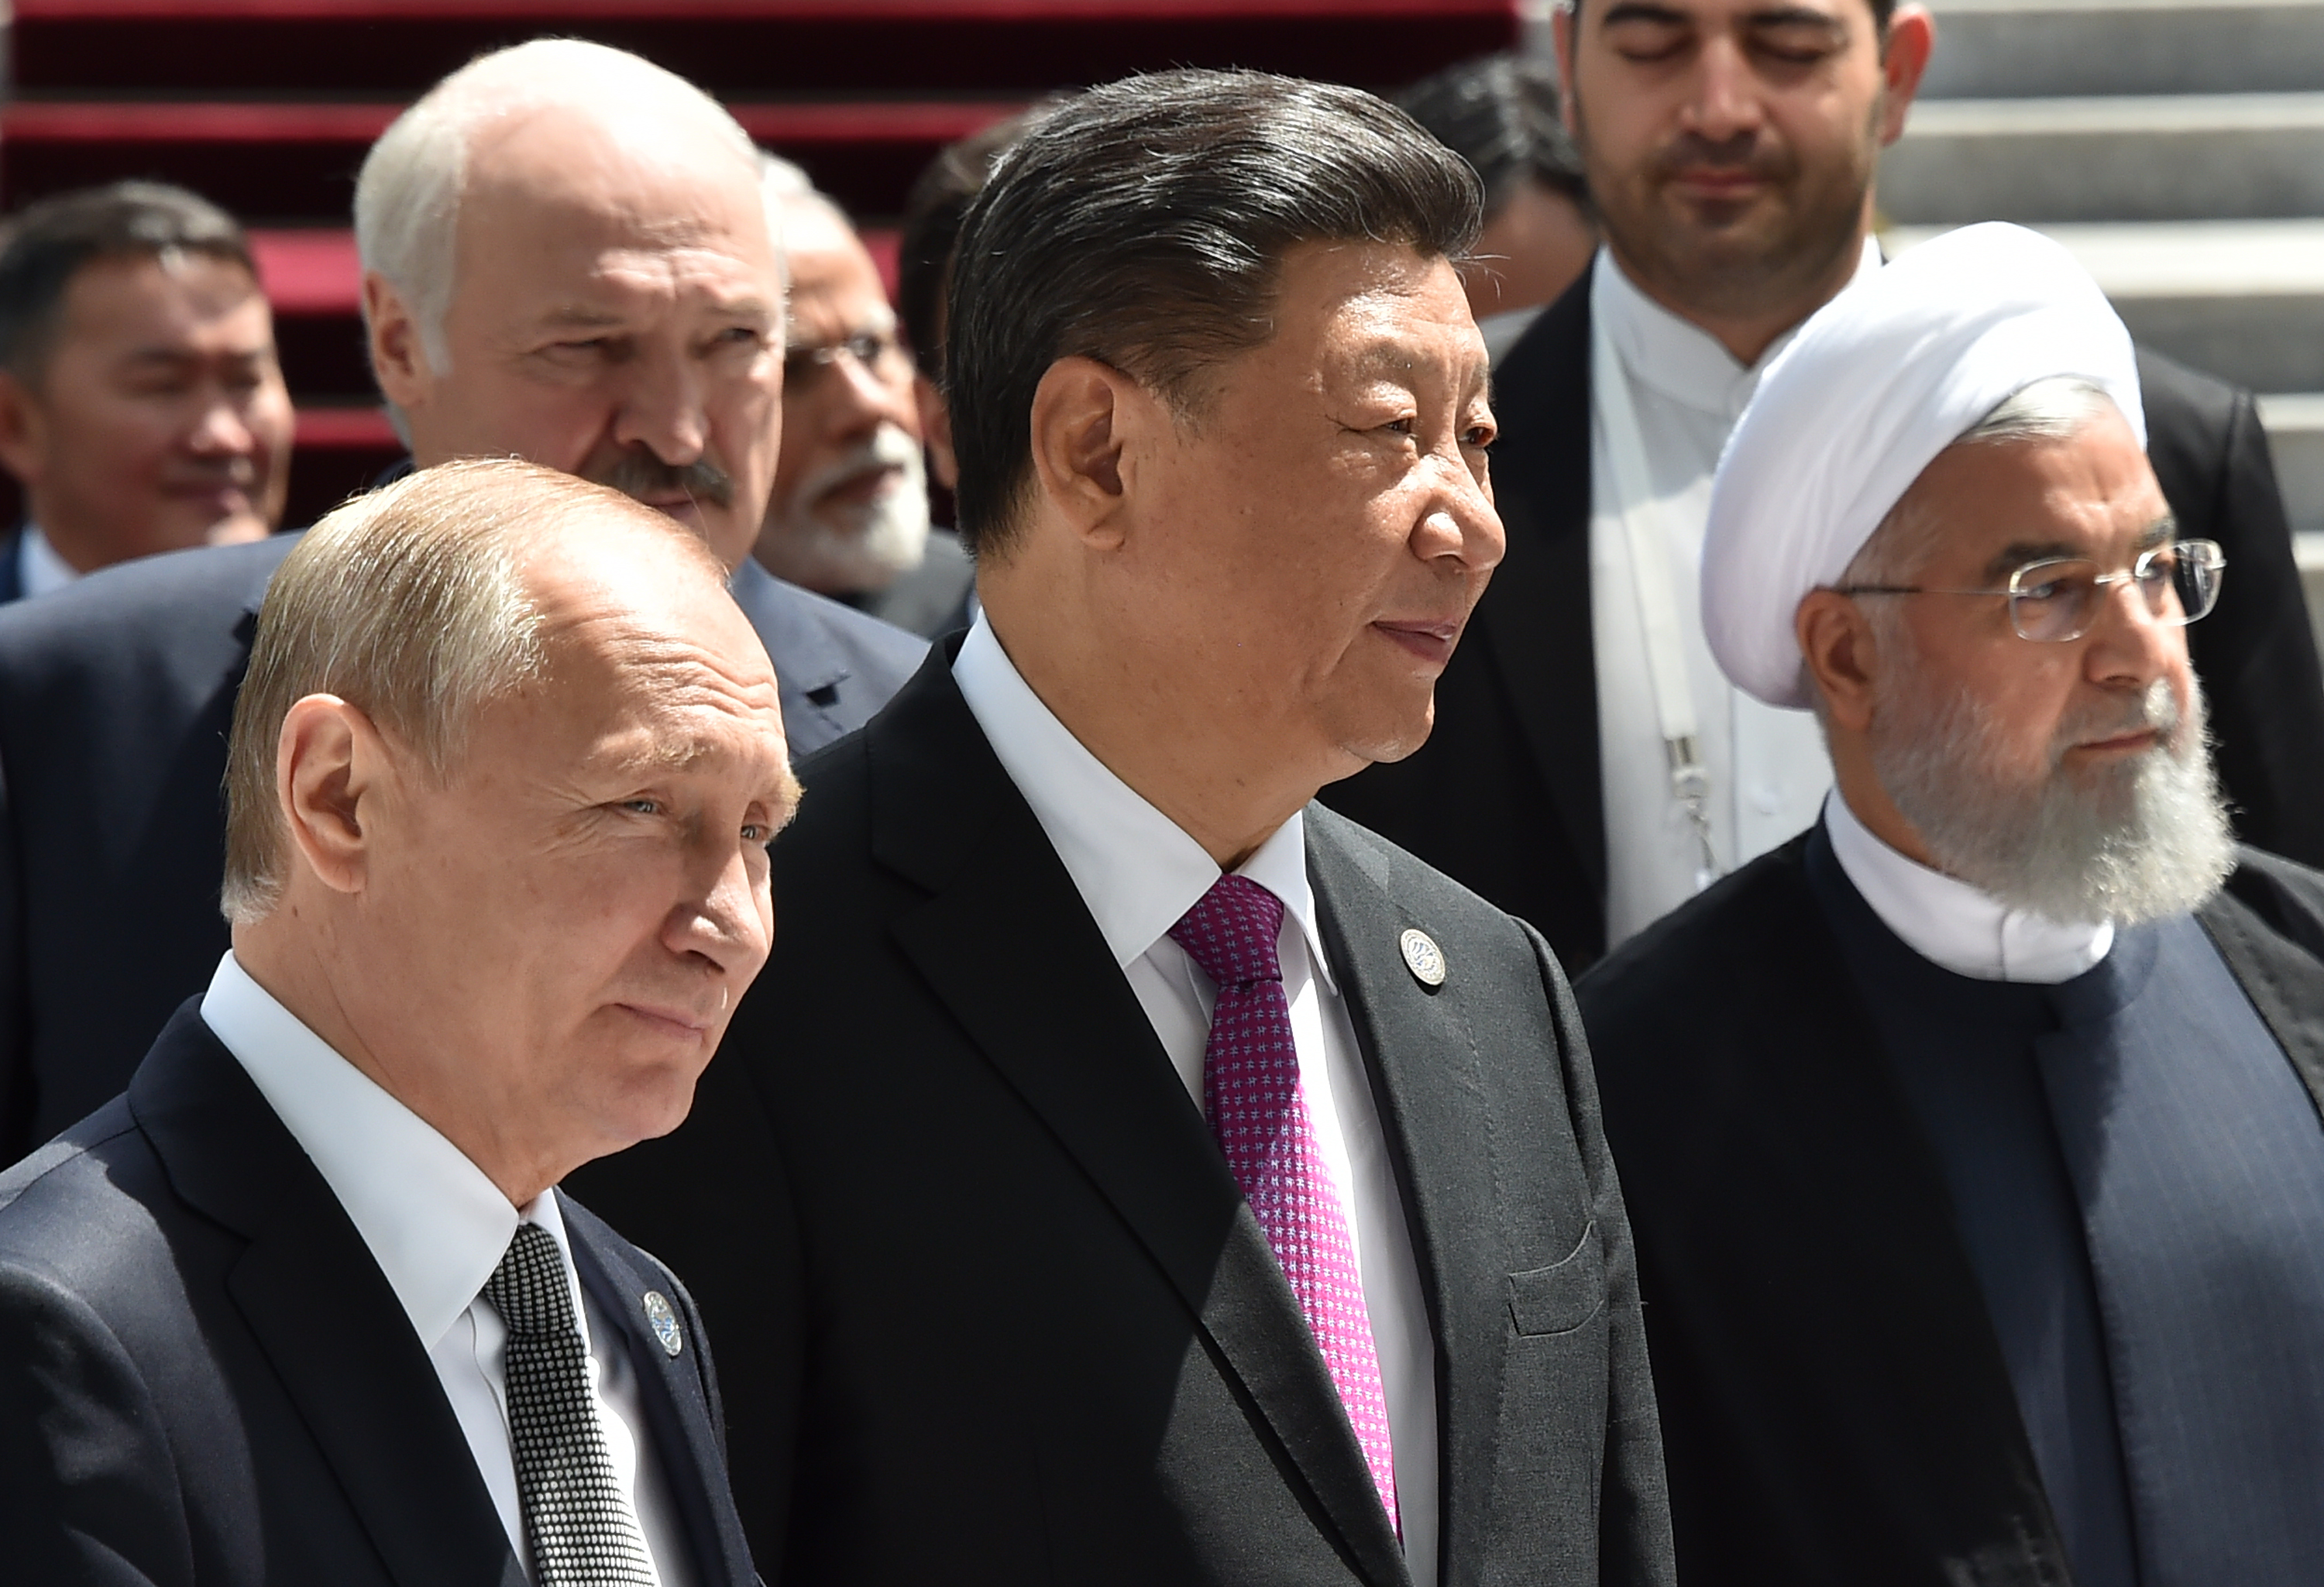 Iran Seeks Deals with Russia and China To Build Coalition to Resist U.S.